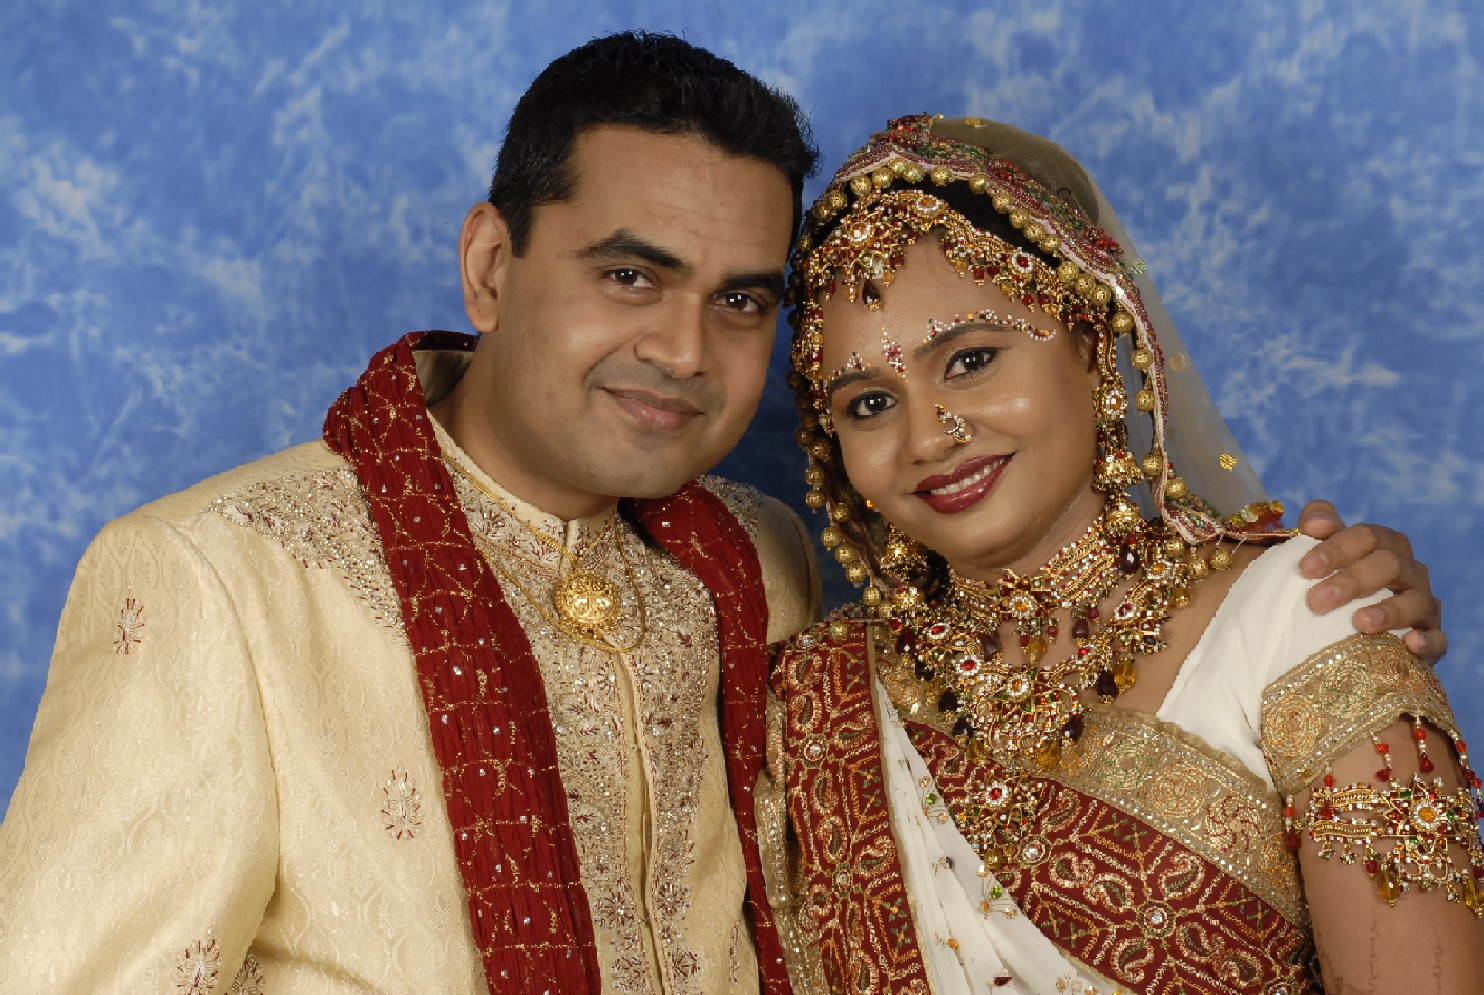 ARTJUNGLE BLOG: Indian Court Rules That Any Couple Who